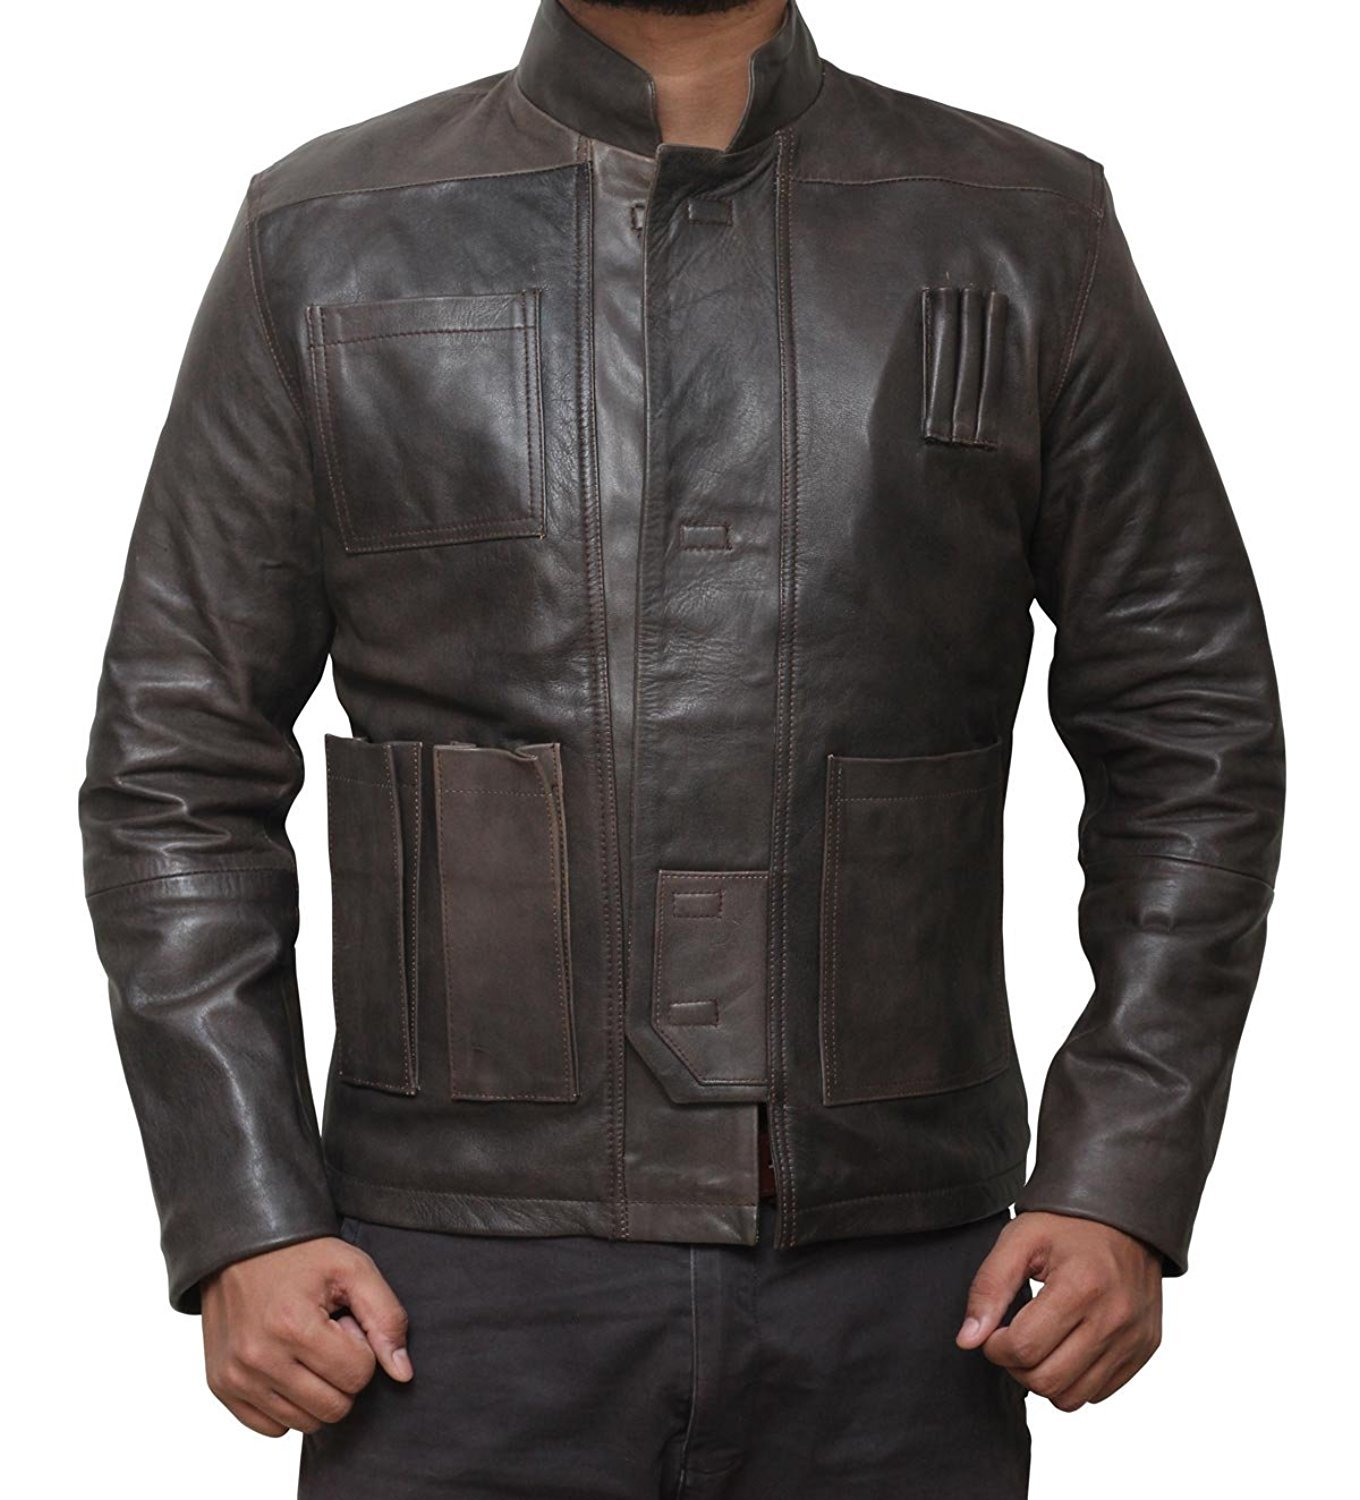 BlingSoul Mens Han Solo Real Leather Jacket - Mens Star Wars Cosplay Costume (L, Brown) [RL-HNSO-BR-L] by BlingSoul